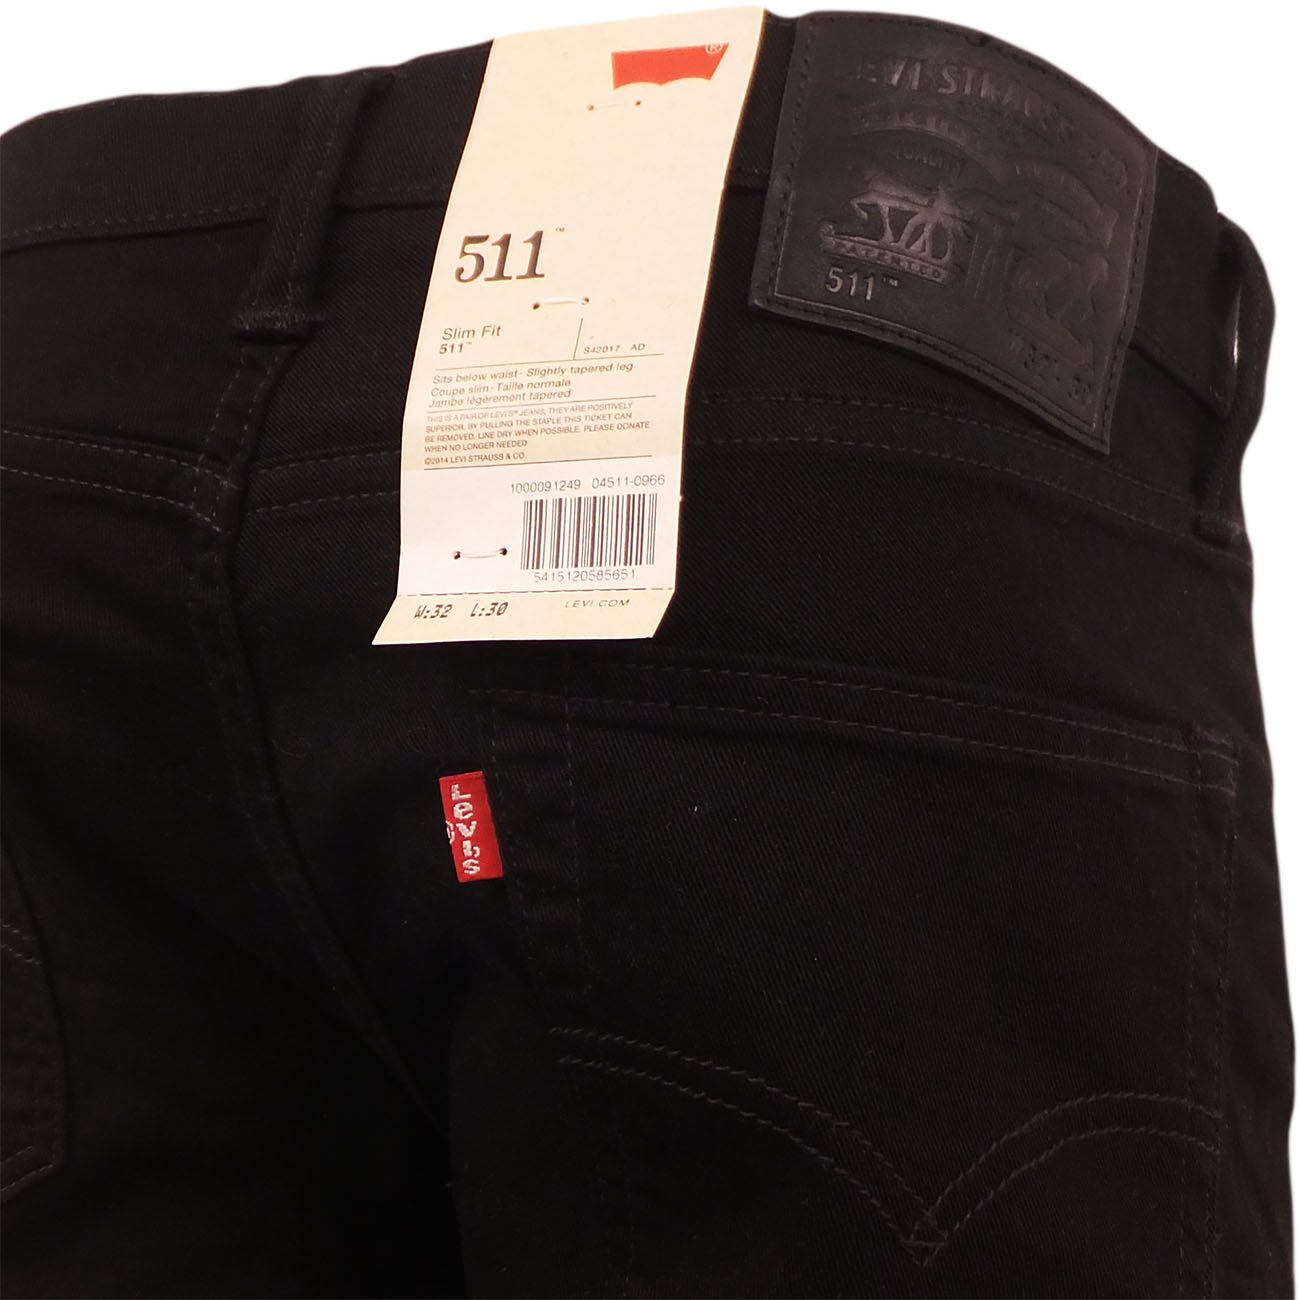 levi strauss jean 511 black slim fit slim leg mr h menswear. Black Bedroom Furniture Sets. Home Design Ideas